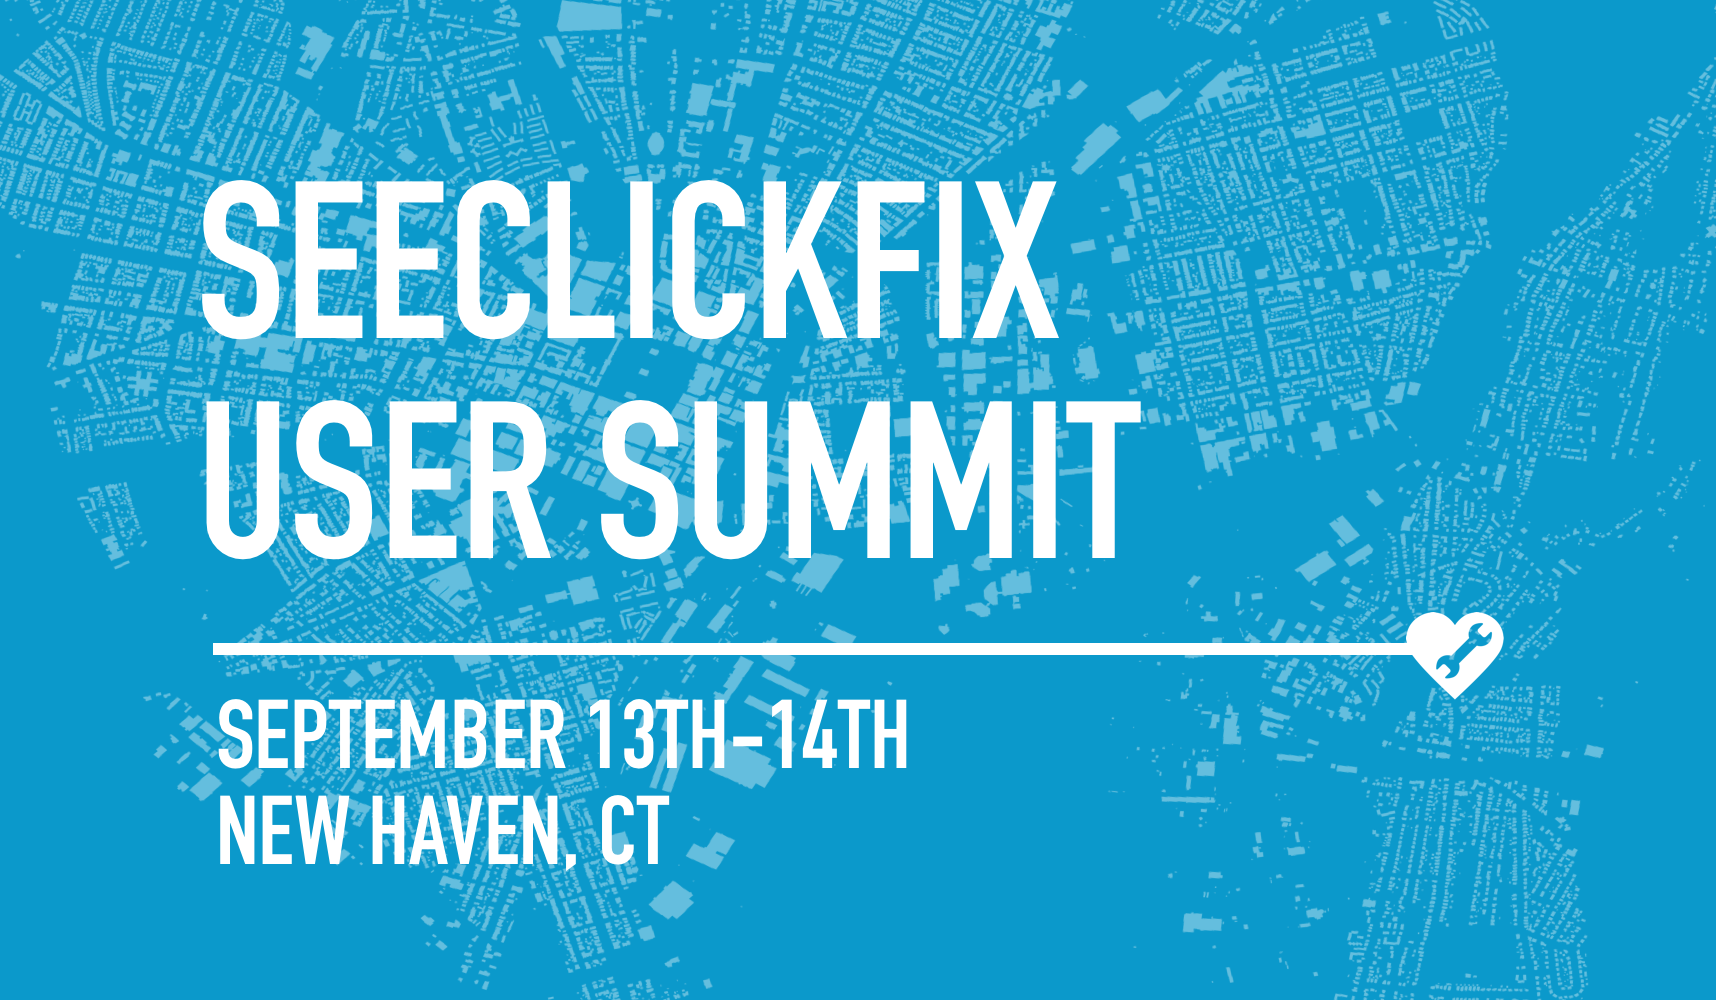 SeeClickFix Annual User Summit 2017 - New Haven, CT